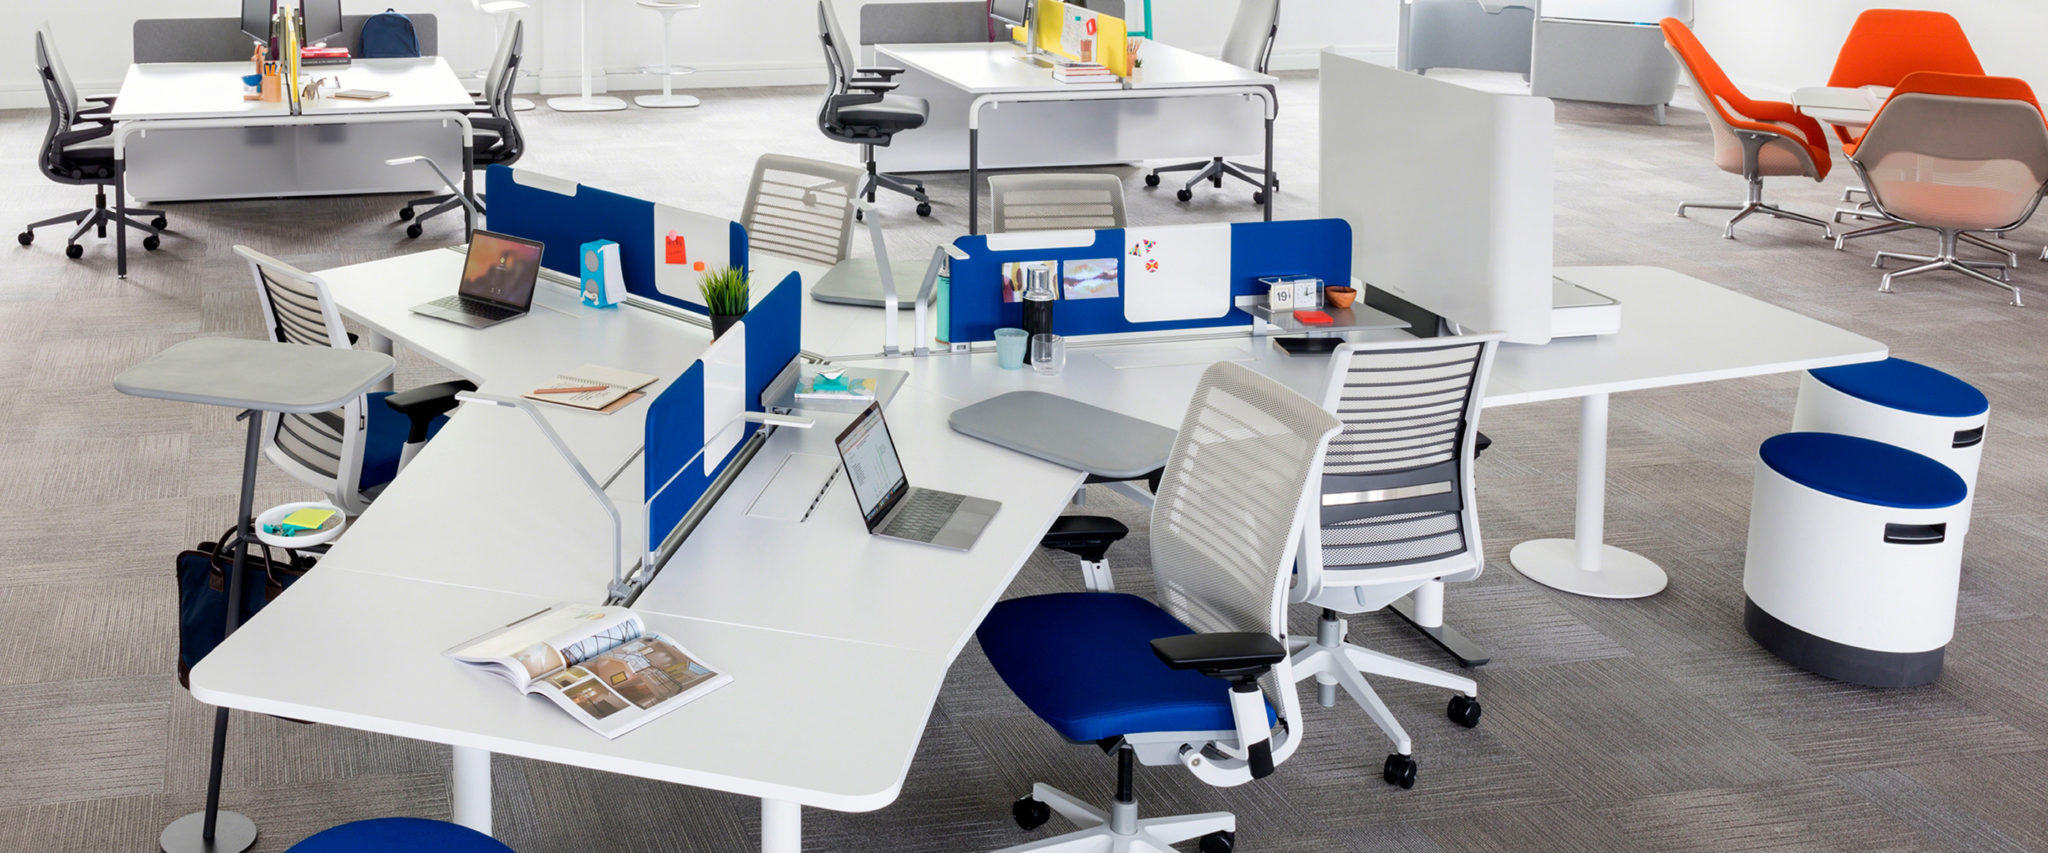 Office Space Planning for Performance